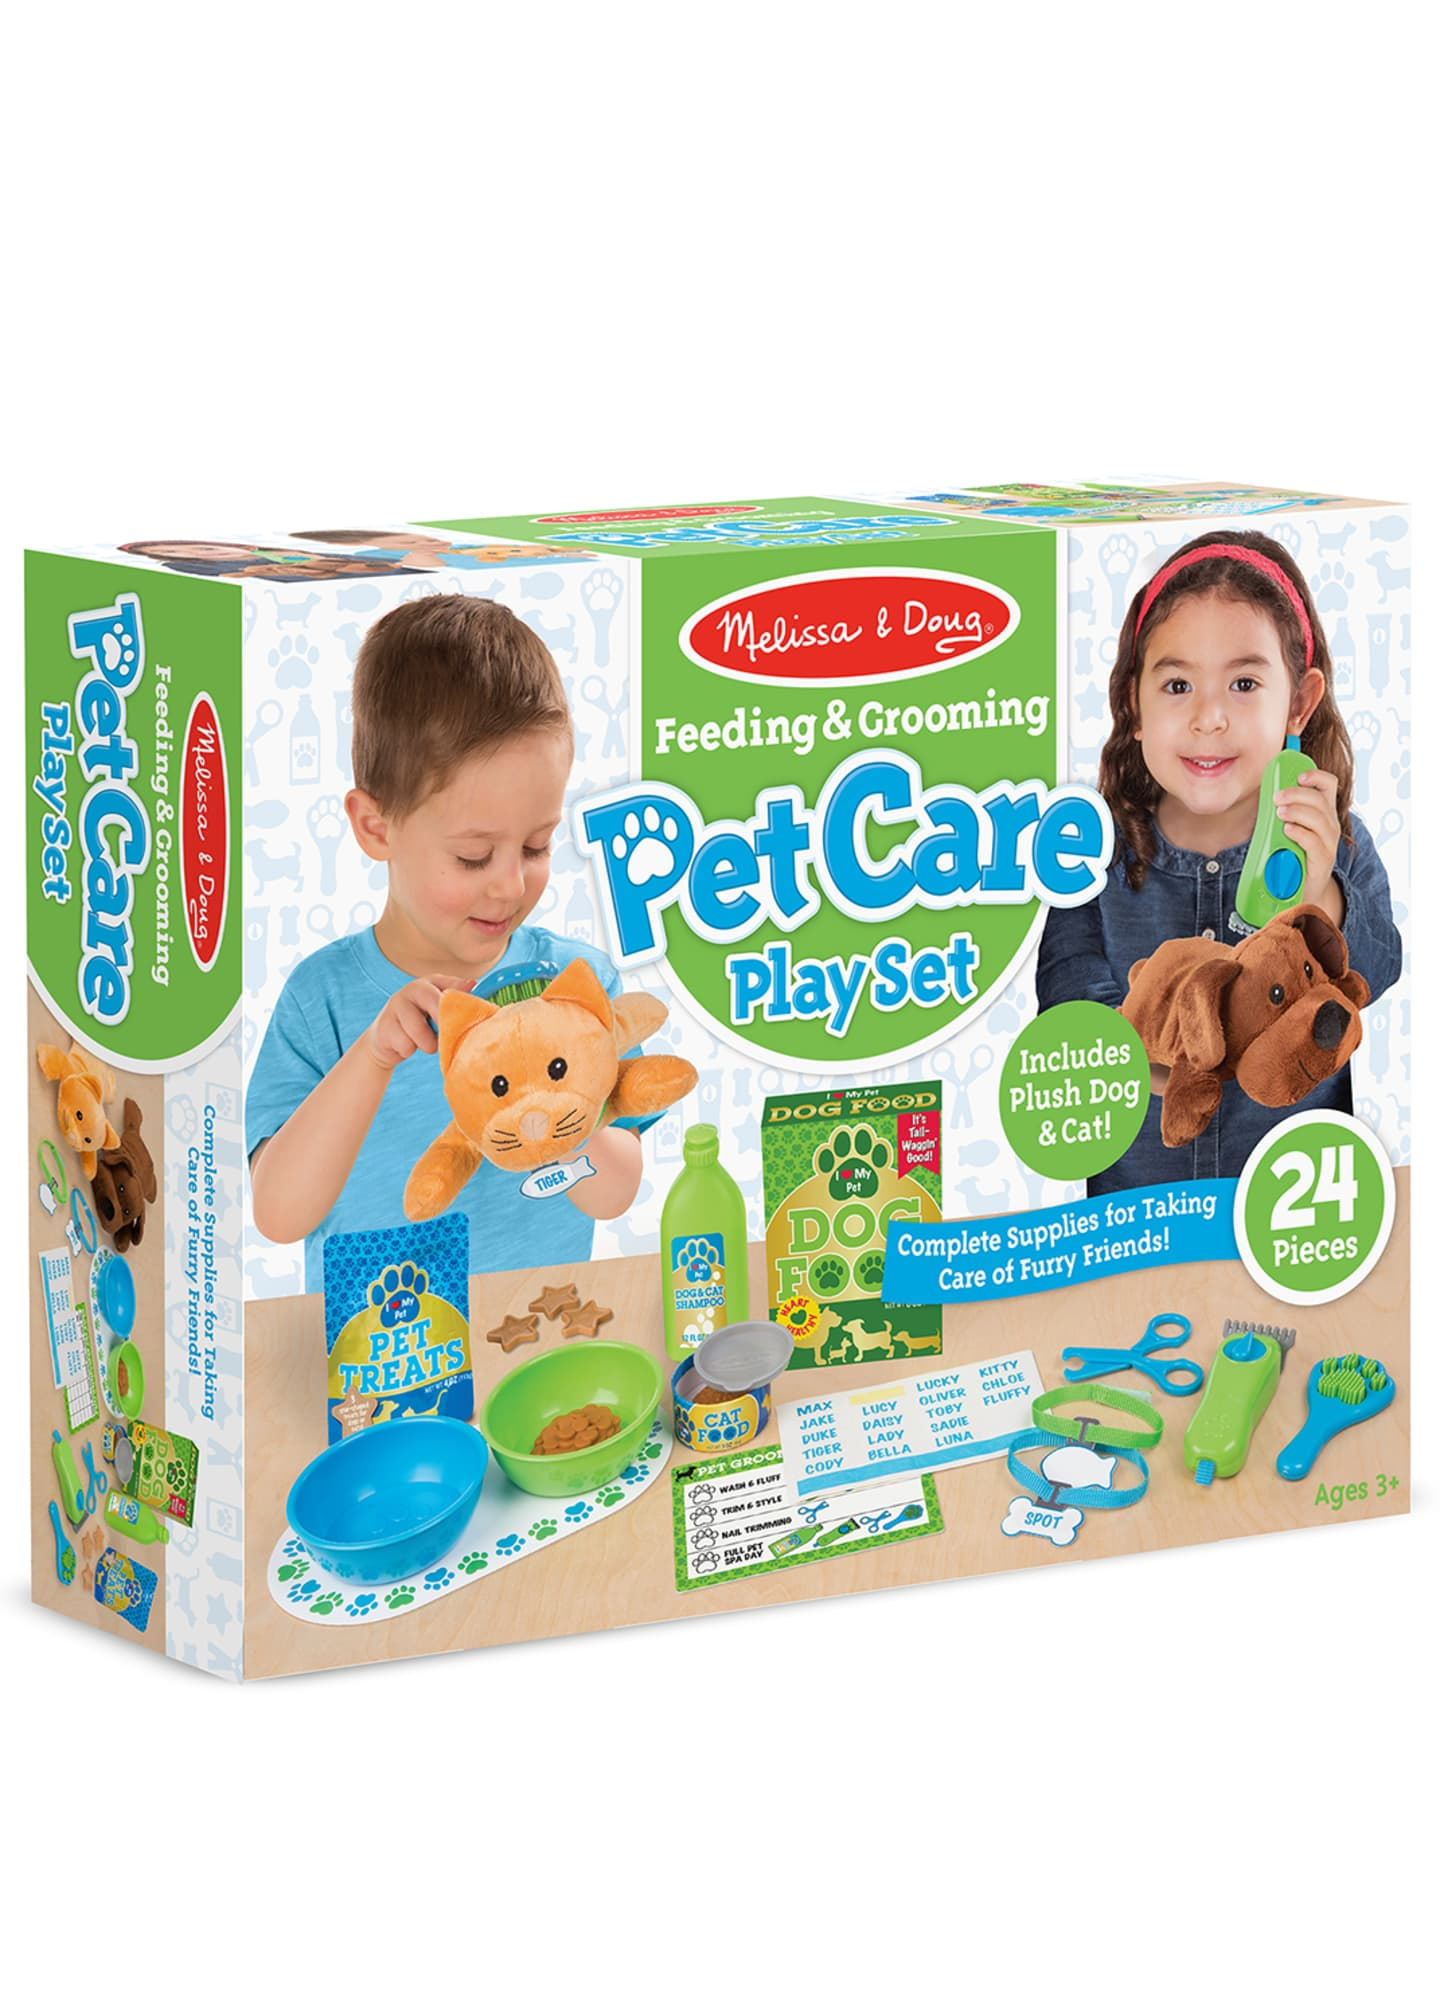 Image 3 of 3: Feeding & Grooming Pet Care Play Set